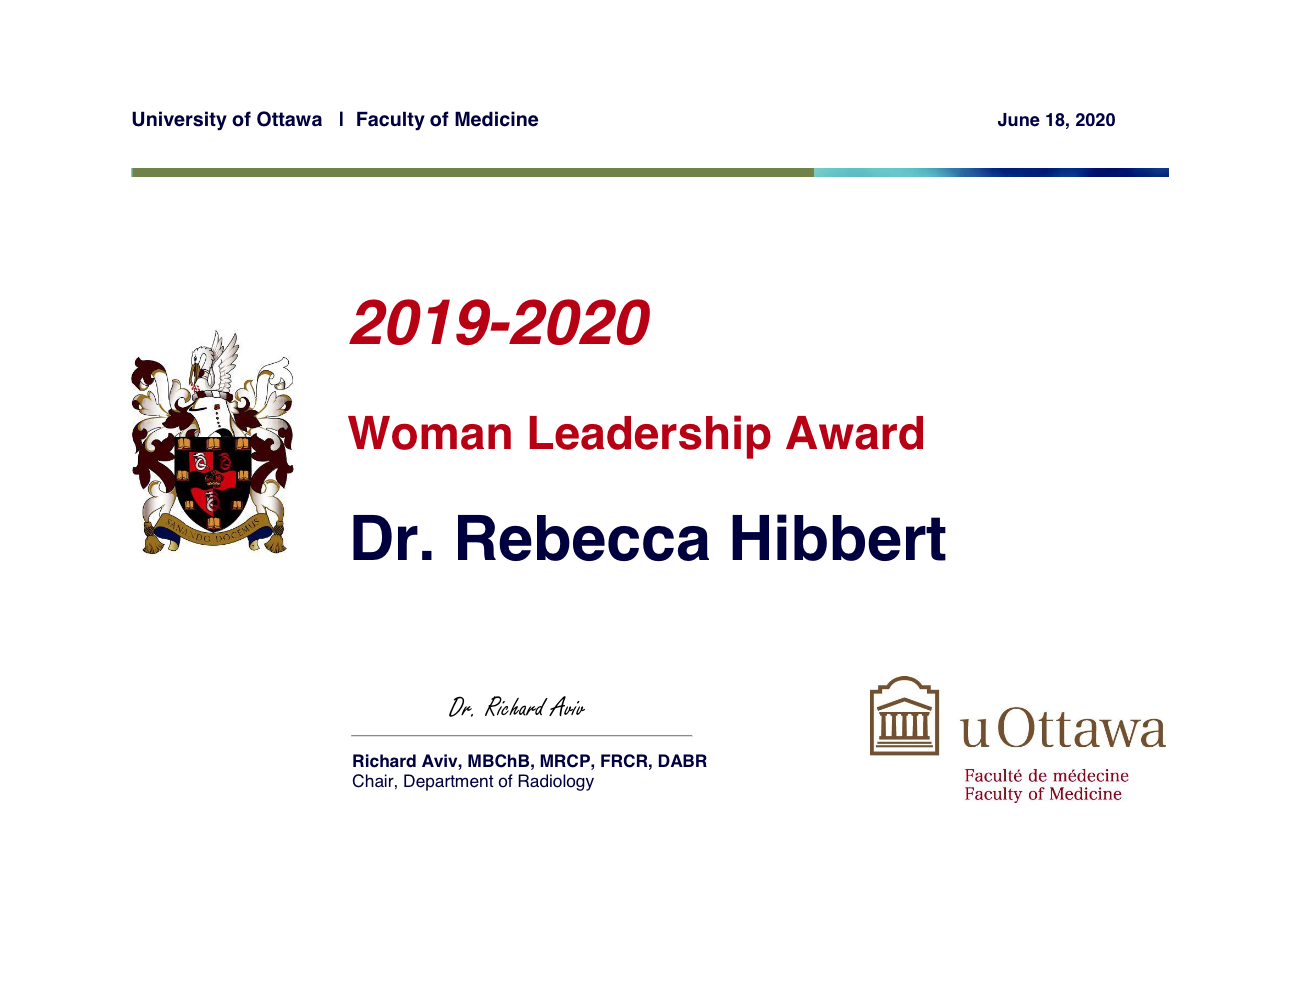 2019-2020 CHEO Woman Leadership Award. Winner is Dr. Rebecca Hibbert